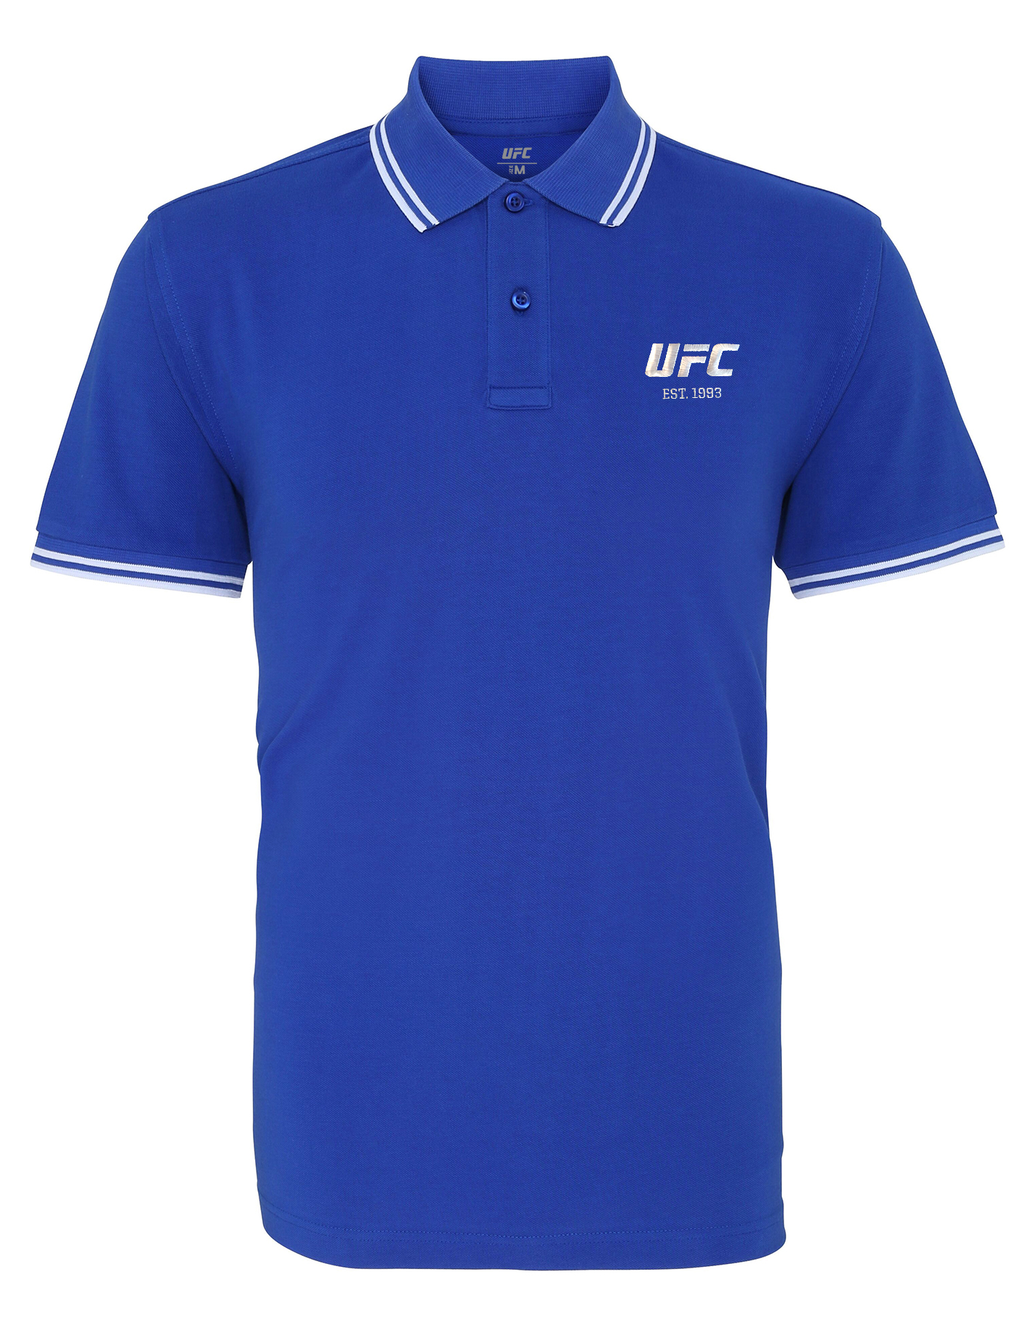 Men's UFC Classic Fit Tipped Polo Embroidered logo- Royal/White